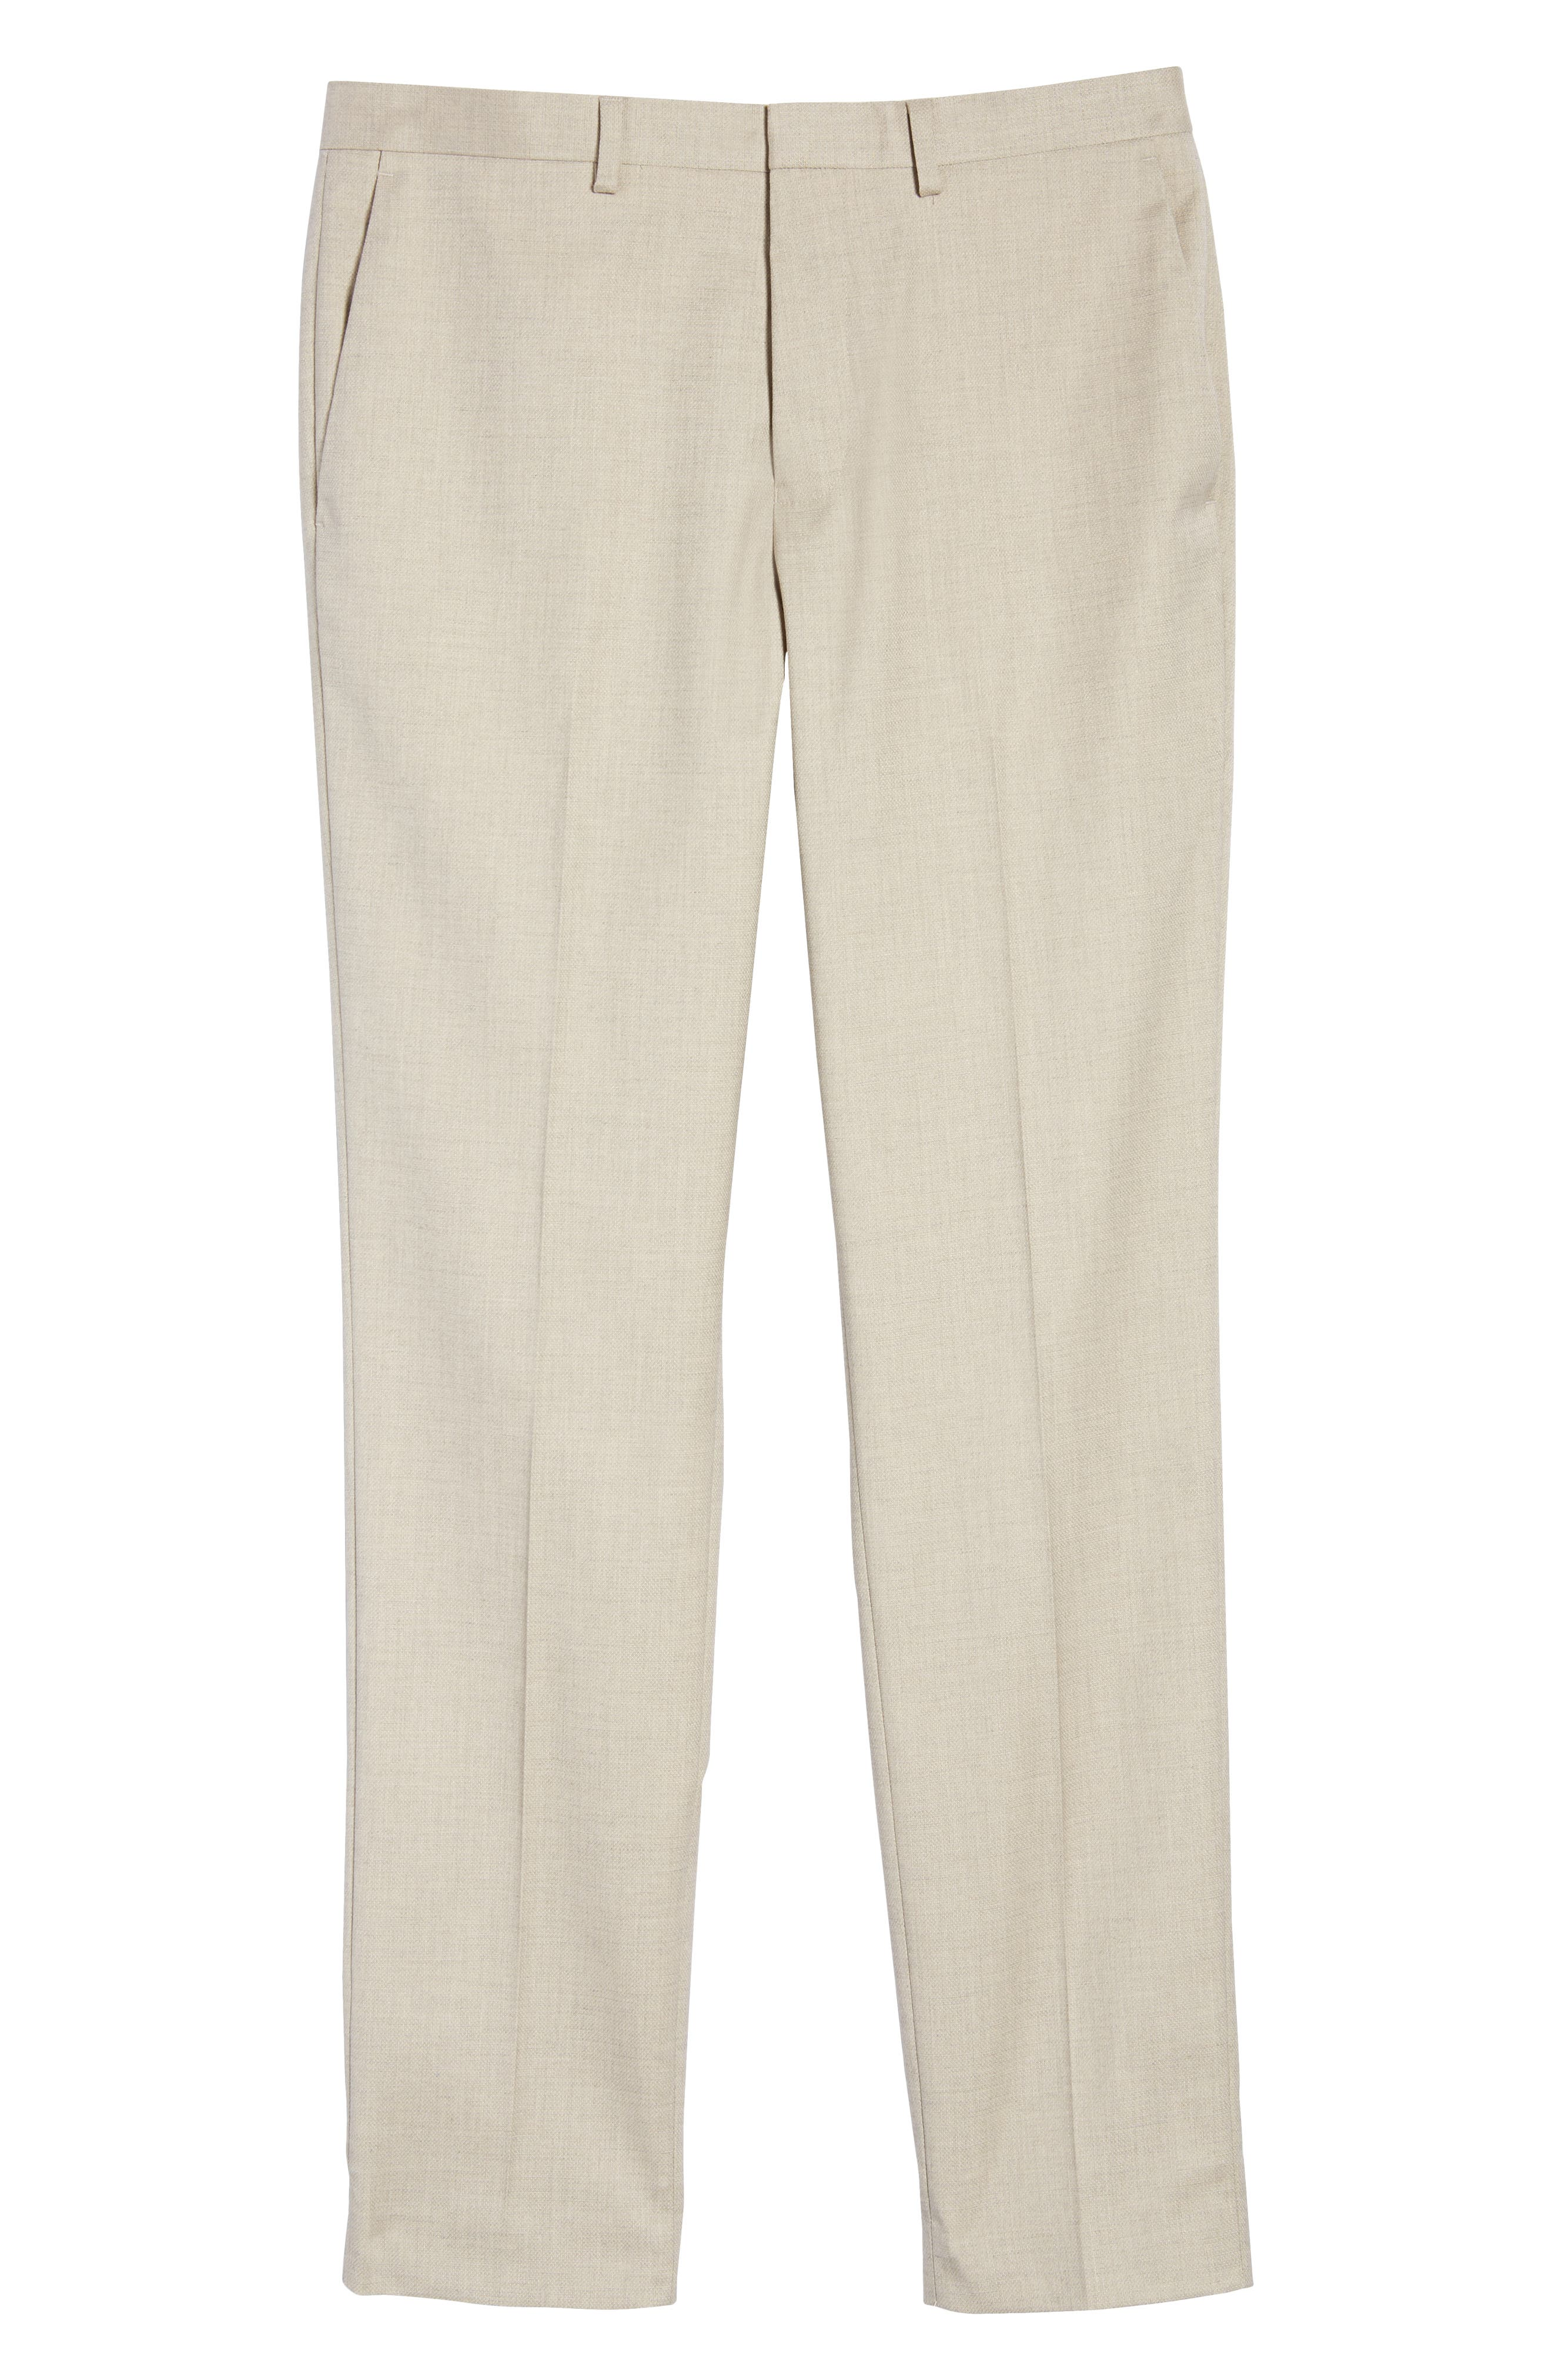 Skinny Fit Suit Trousers,                             Alternate thumbnail 6, color,                             STONE